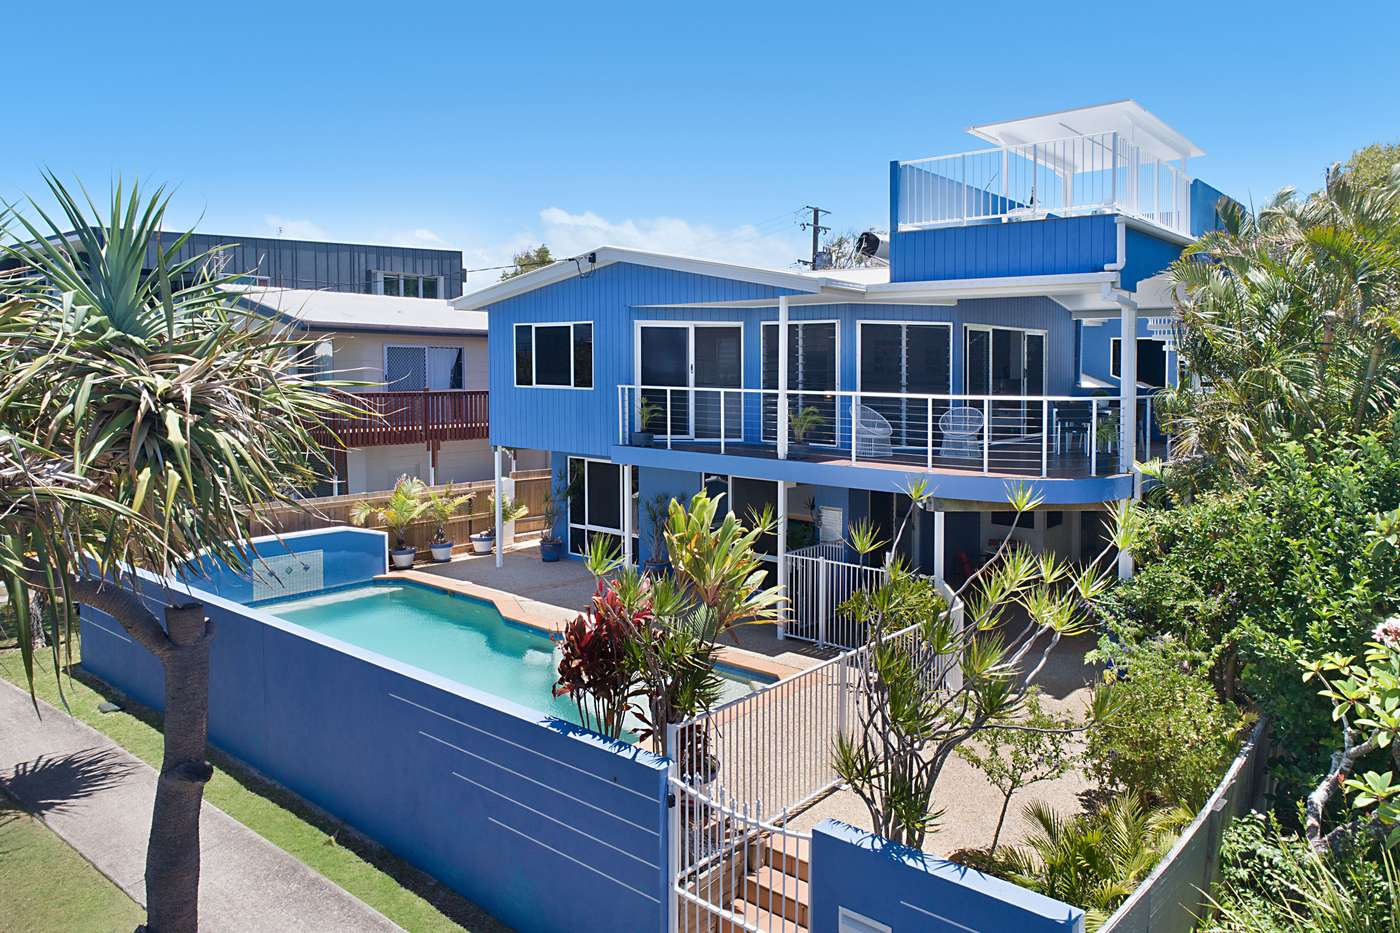 Main view of Homely house listing, 30 Henzell Street, Dicky Beach, QLD 4551